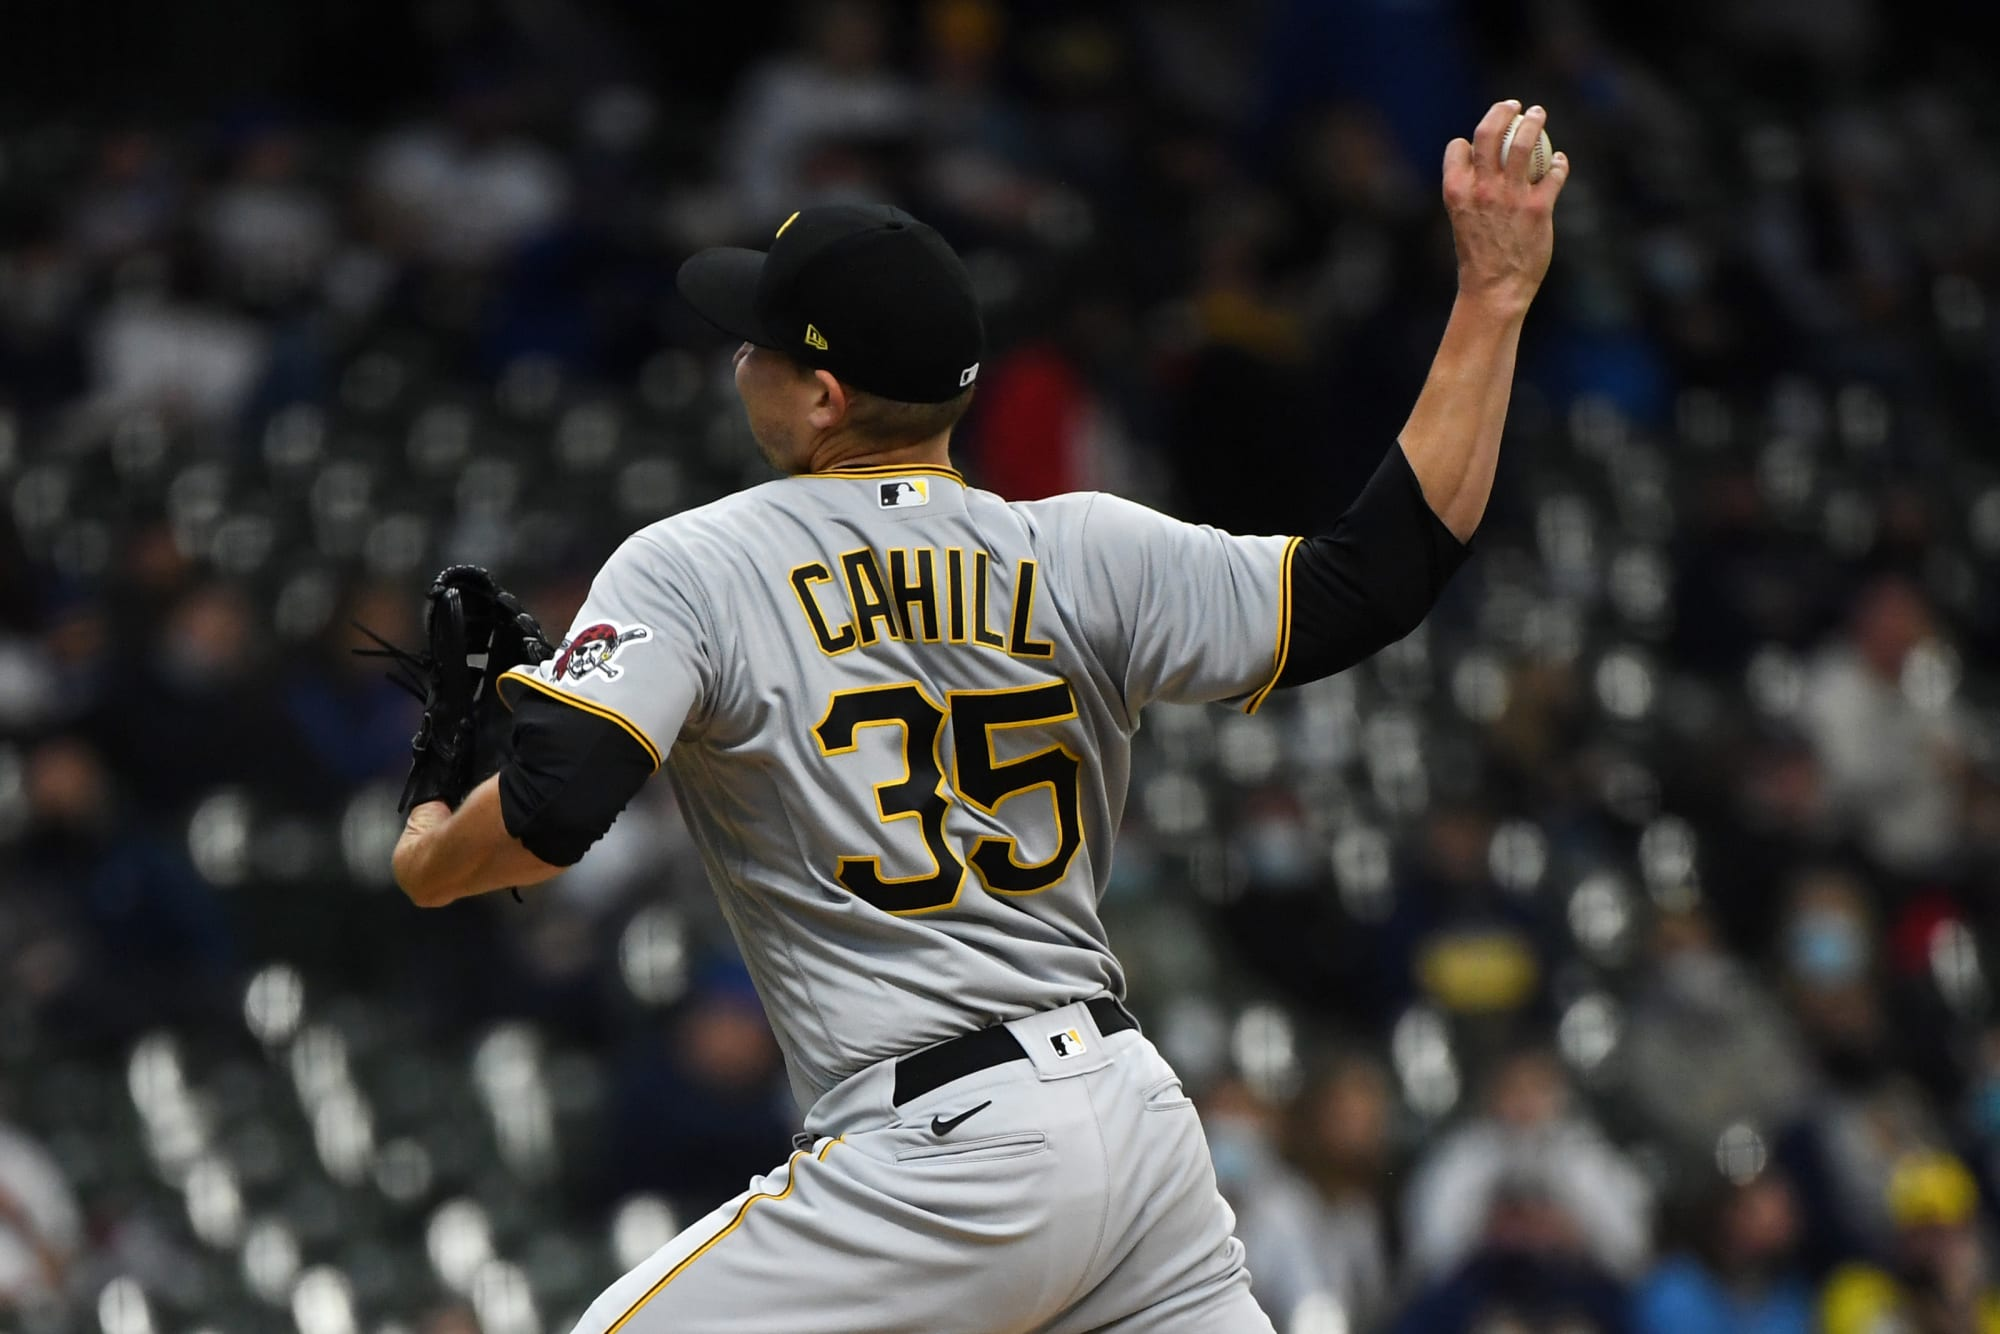 Pittsburgh Pirates: Trevor Cahill Struggles as the Pirates lose 7-1